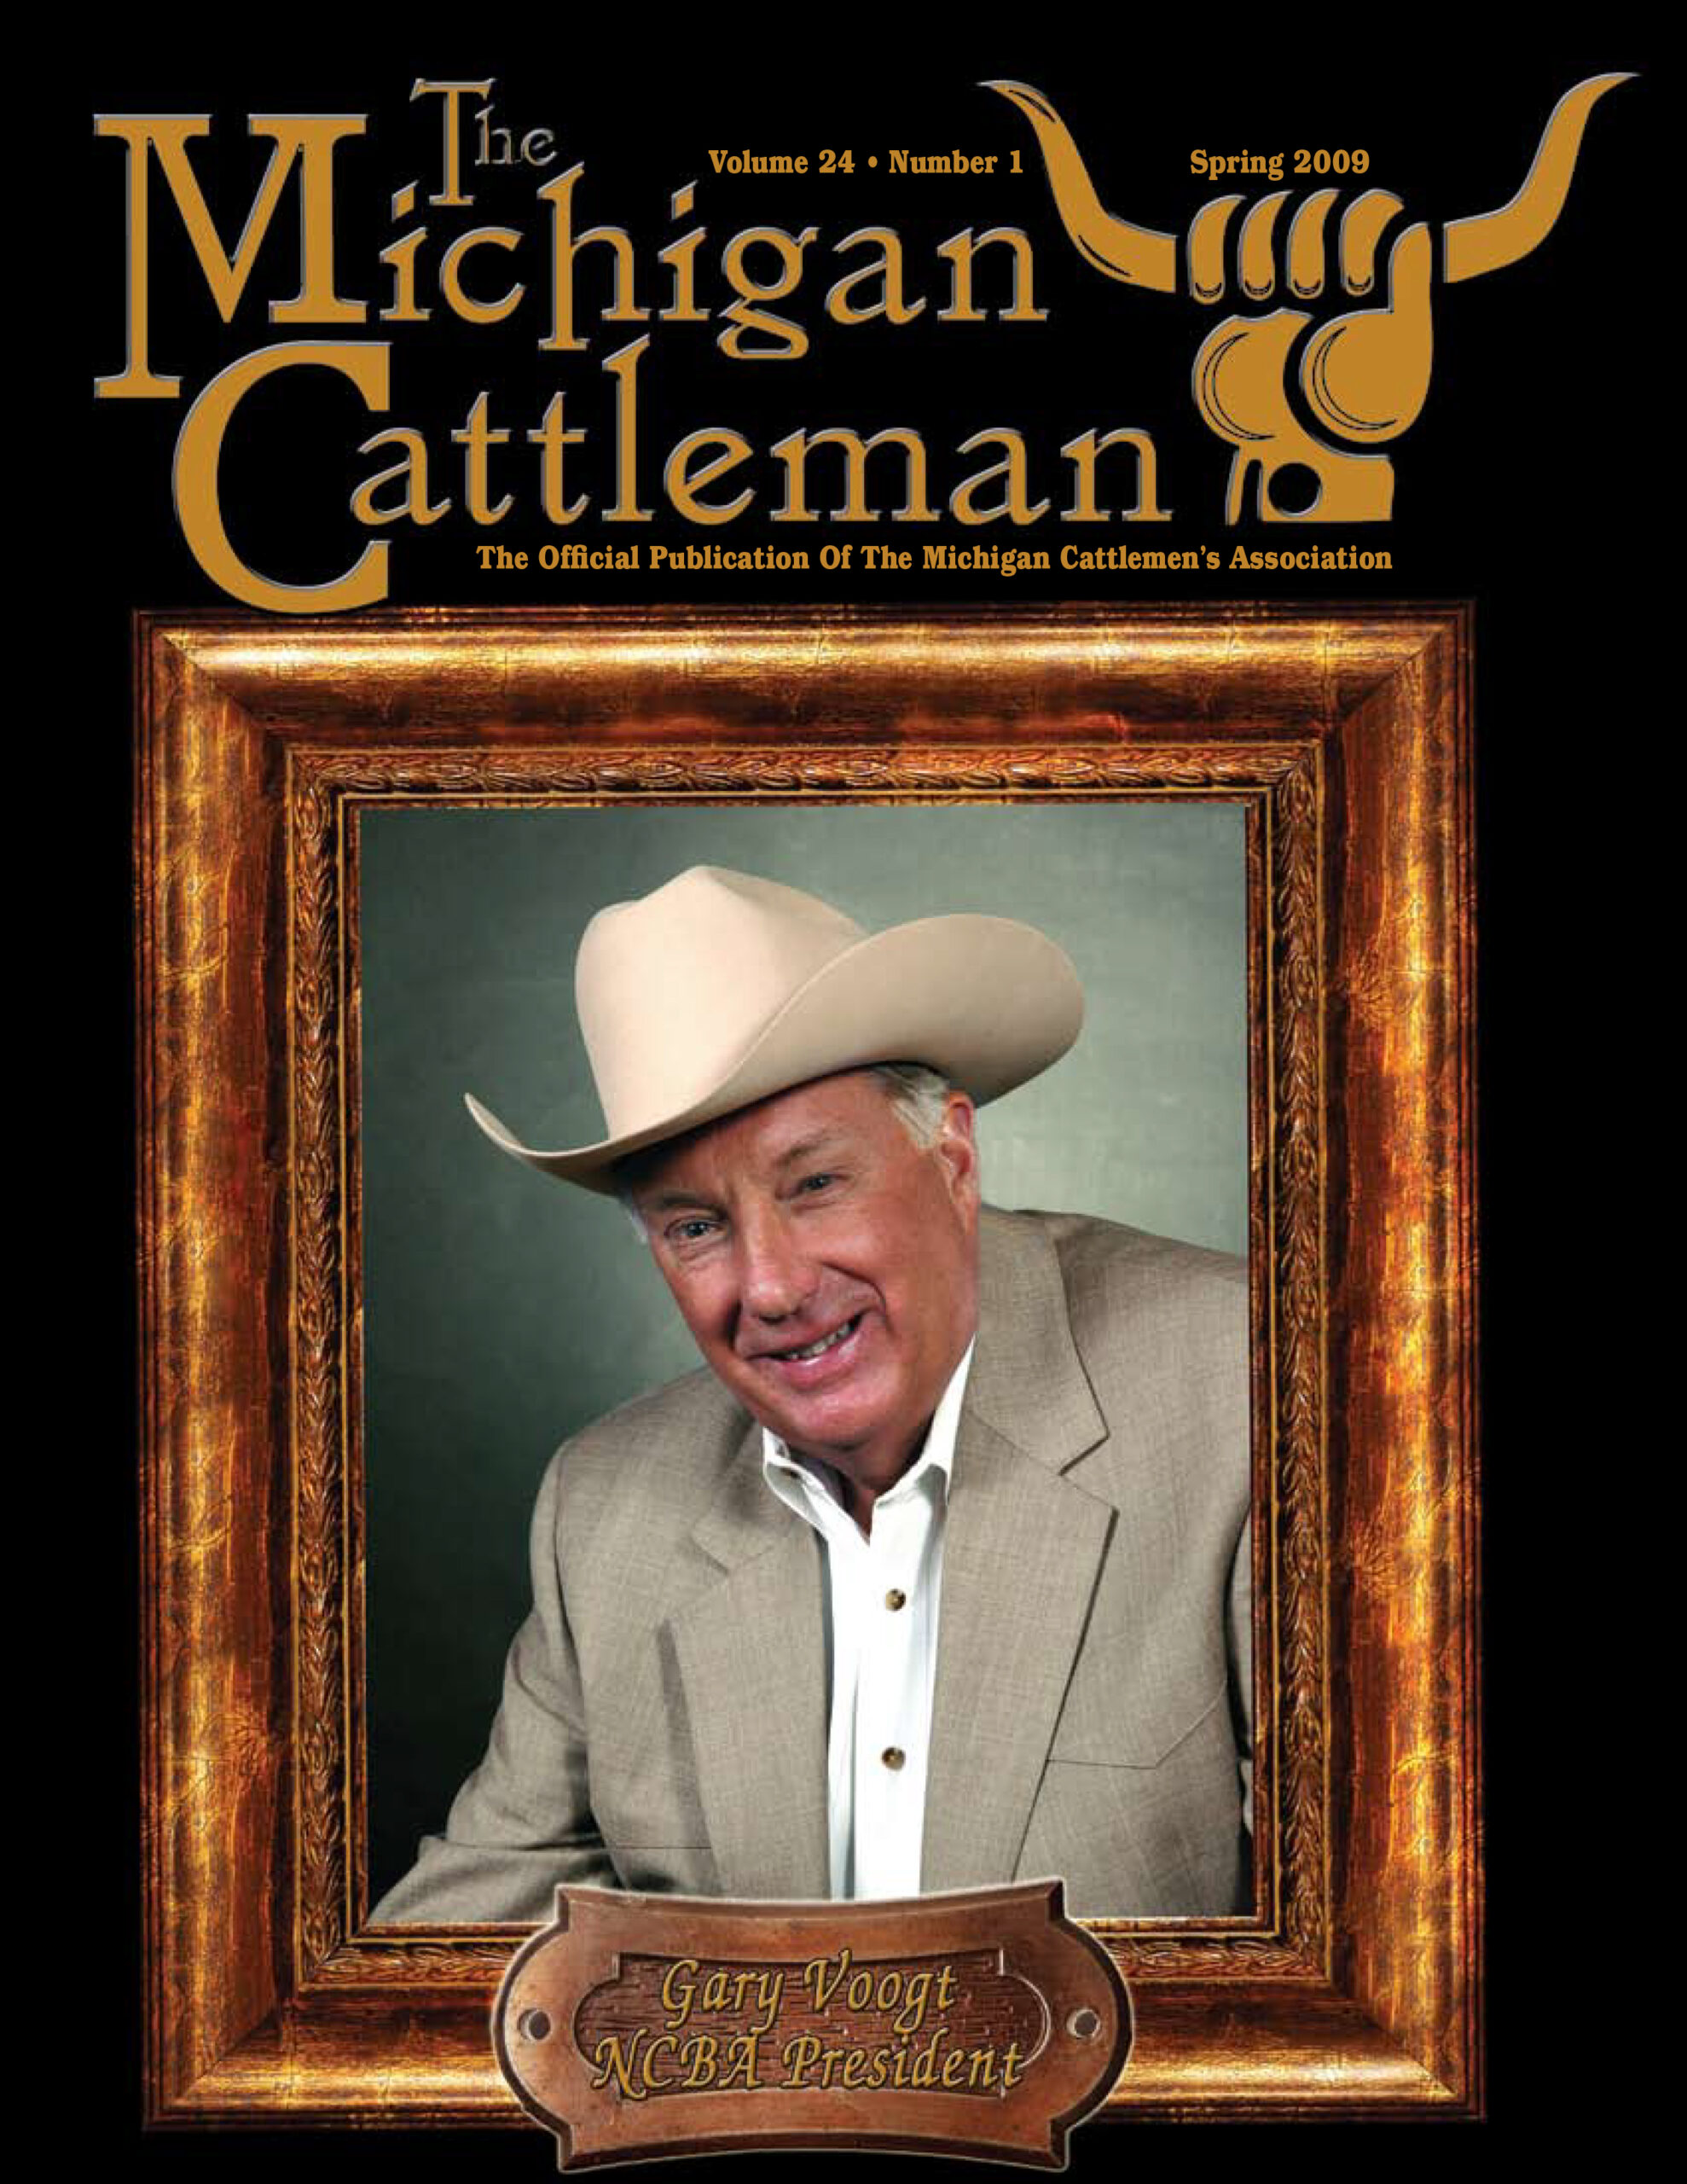 Gary Voogt in The Michigan Cattleman cover